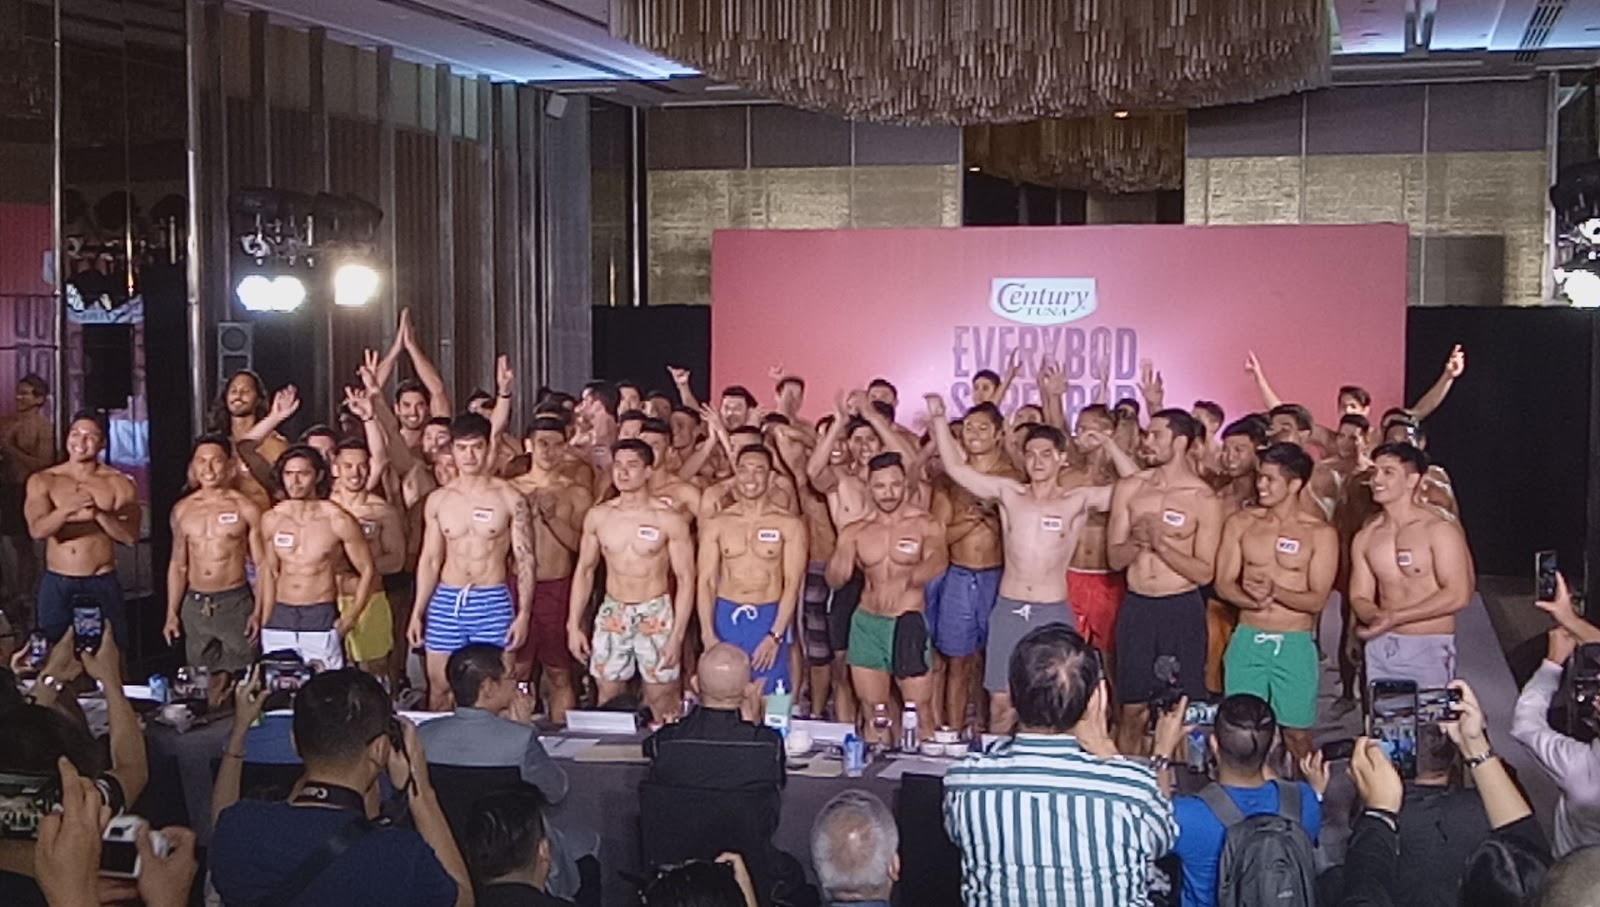 Century Tuna Everybod Superbod Final Callback - Male Category